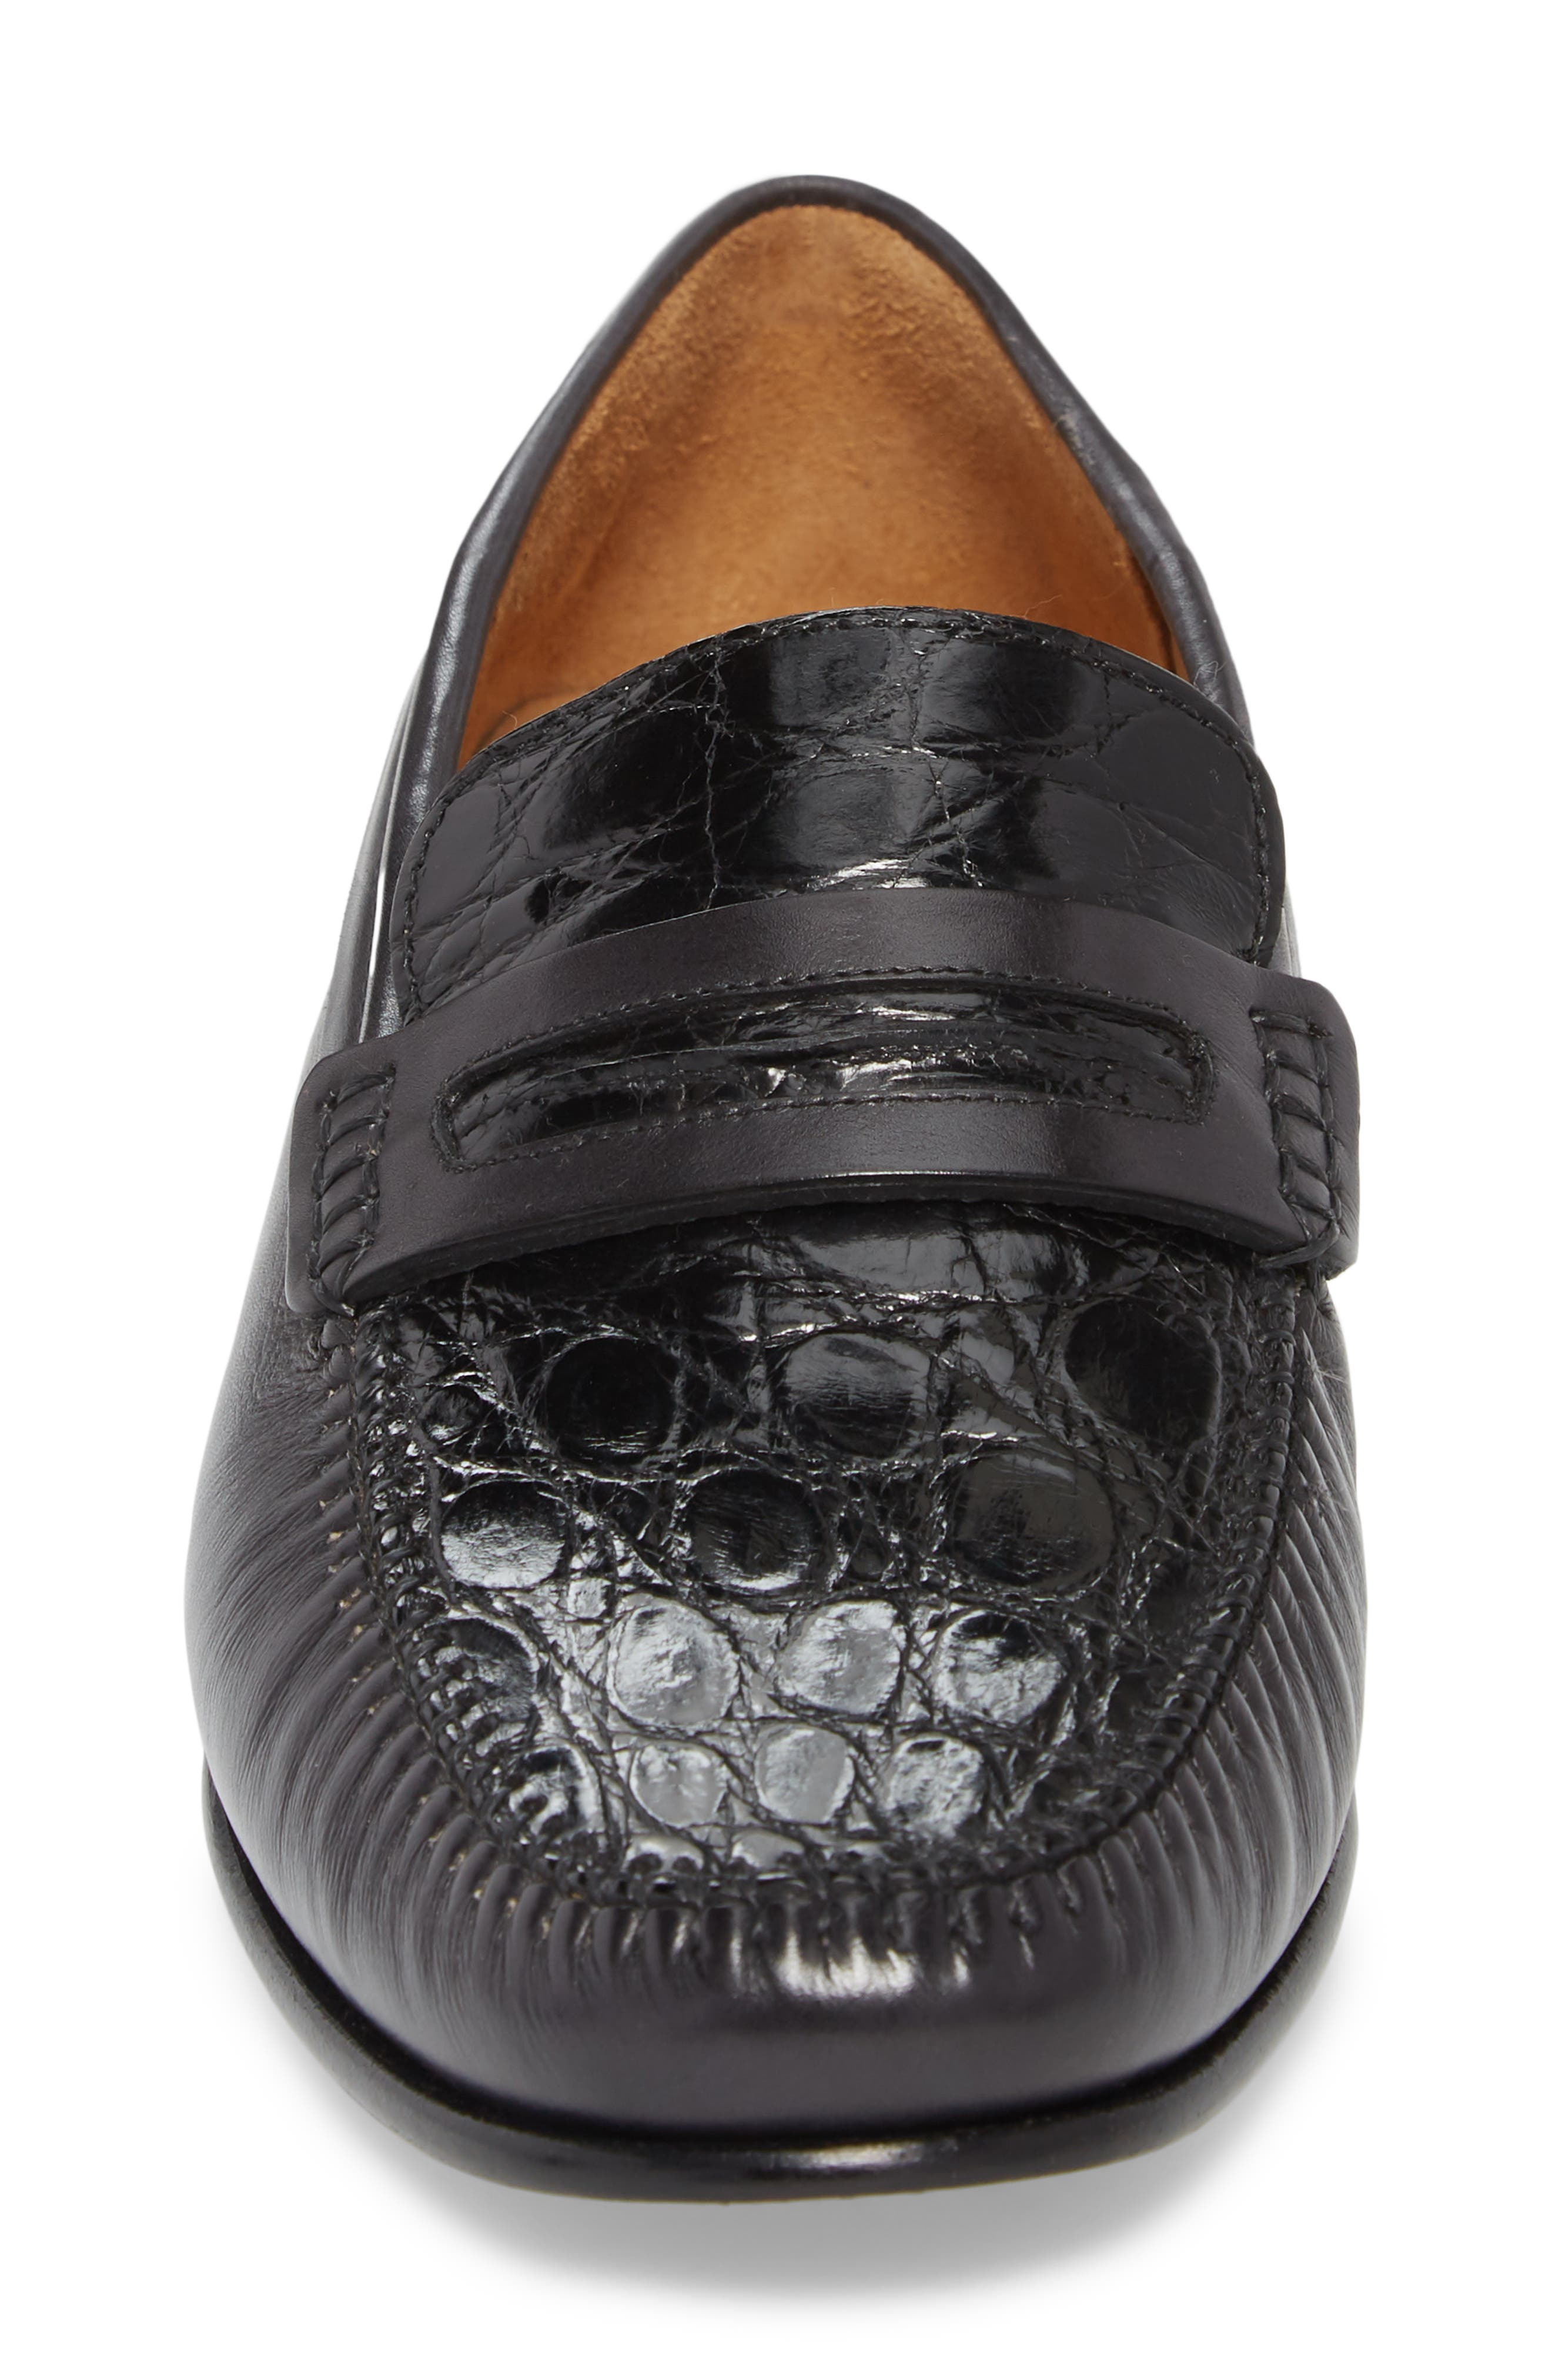 Kronos Moc Toe Penny Loafer,                             Alternate thumbnail 4, color,                             BLACK LEATHER